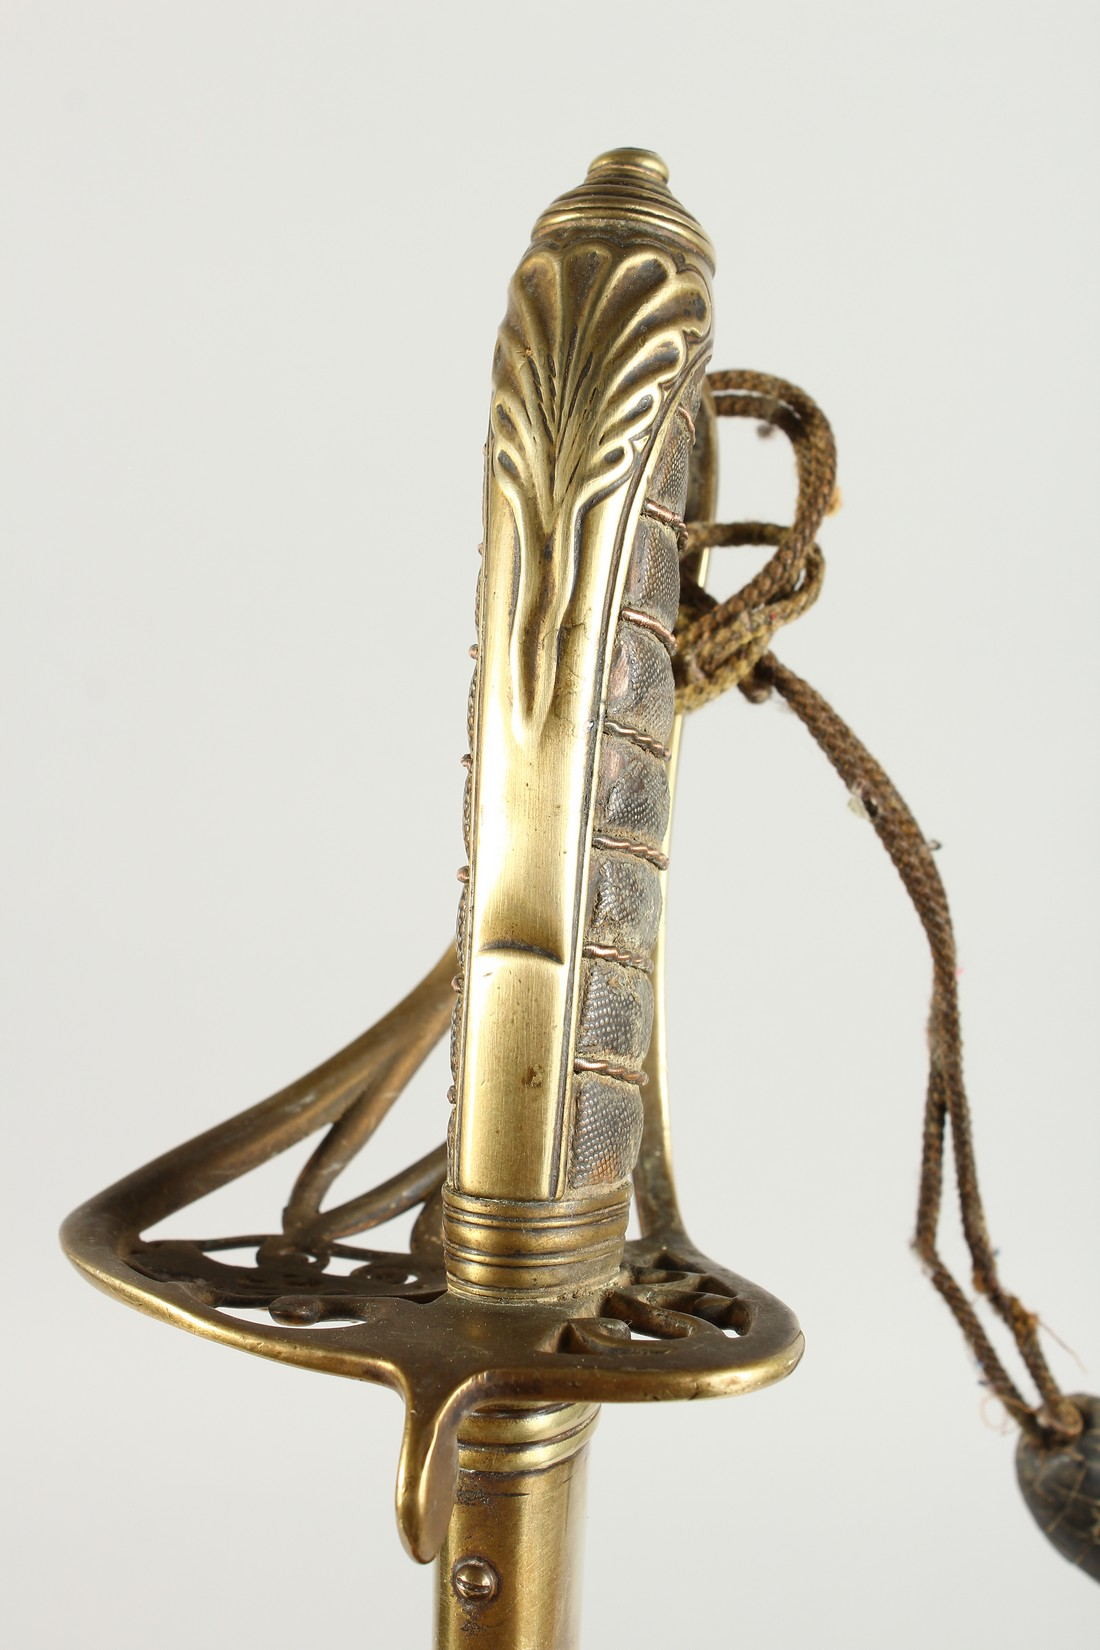 A GOOD VICTORIAN NAVAL SWORD with shagreen handle and engraved blade, V R & Crown inc., brown - Image 6 of 25